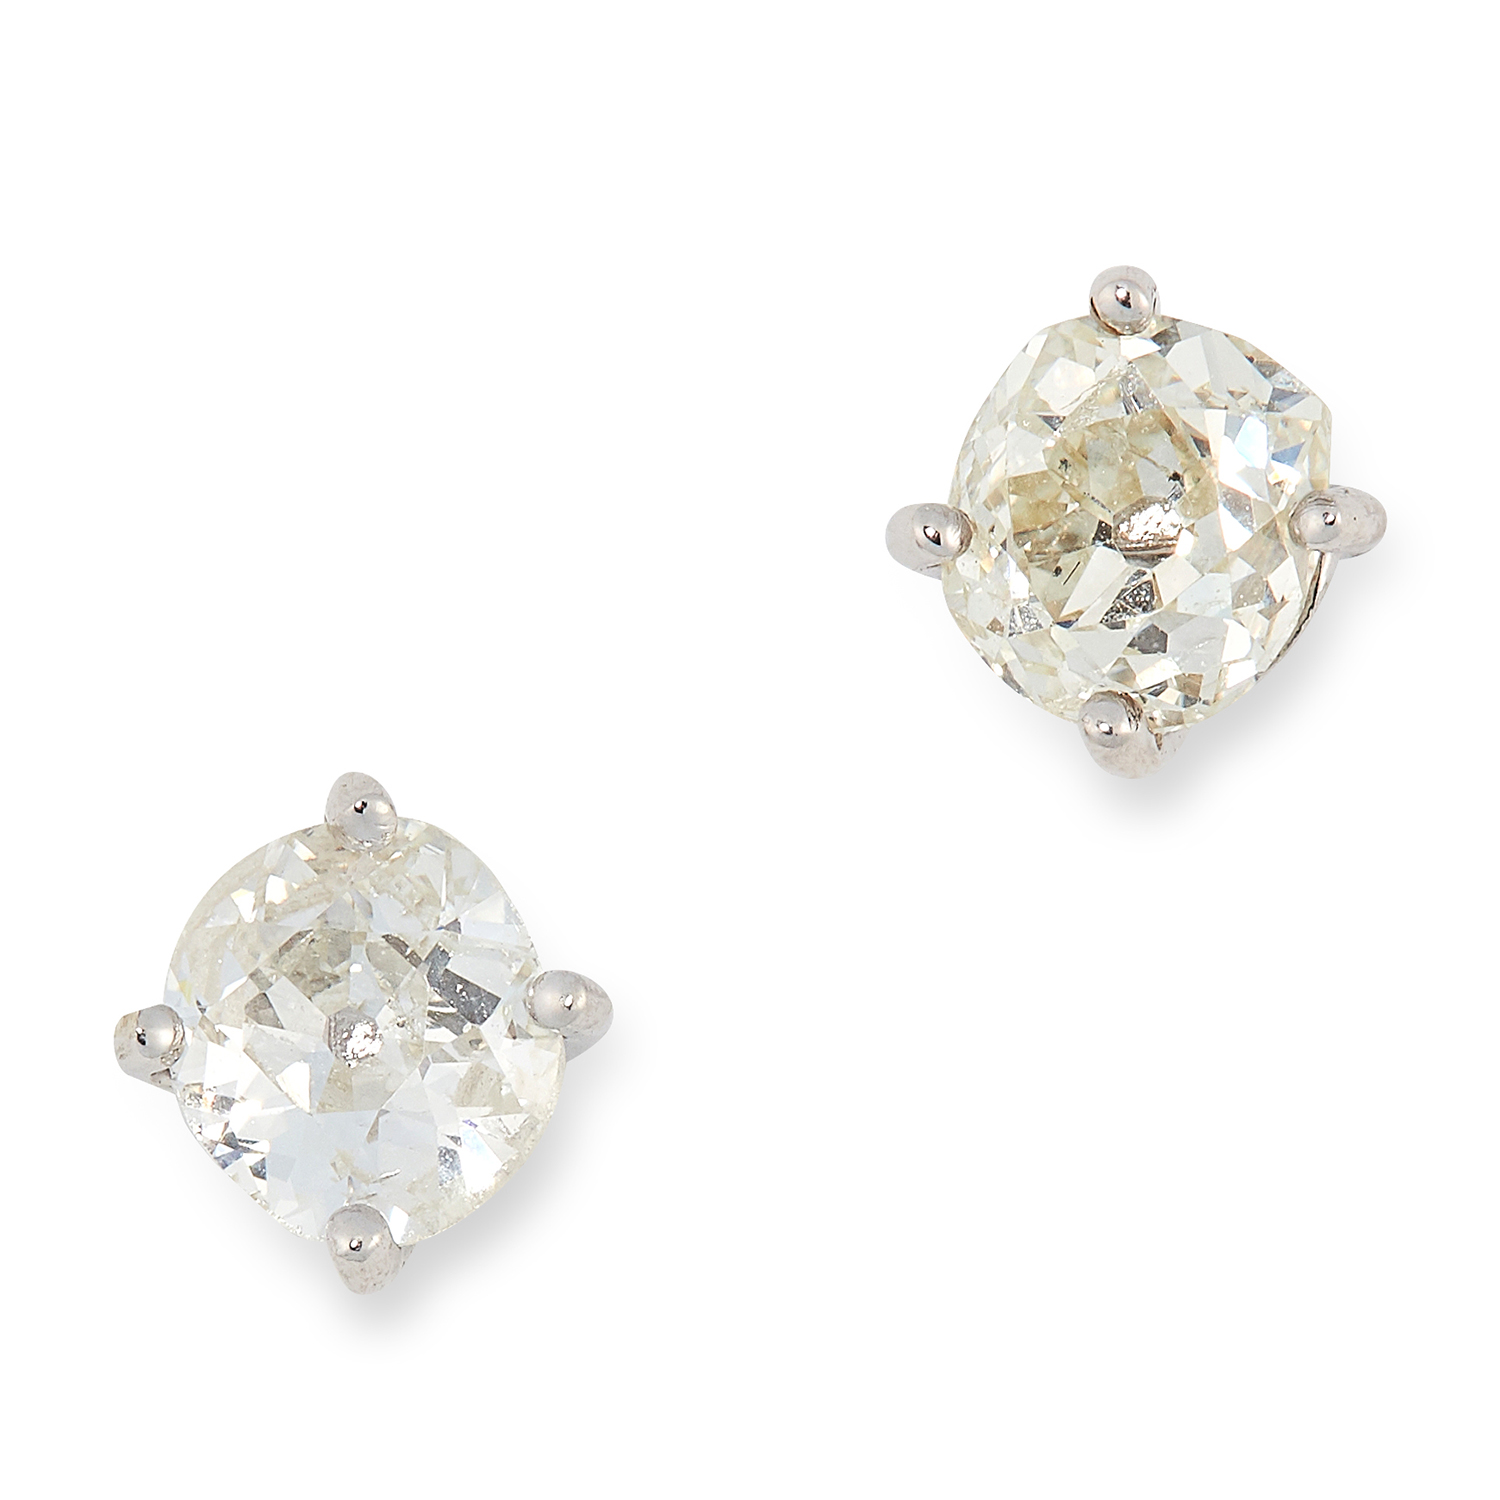 Los 40A - A PAIR OF 1.00 CARAT DIAMOND STUD EARRINGS each set with an old round cut diamond, totalling 1.00